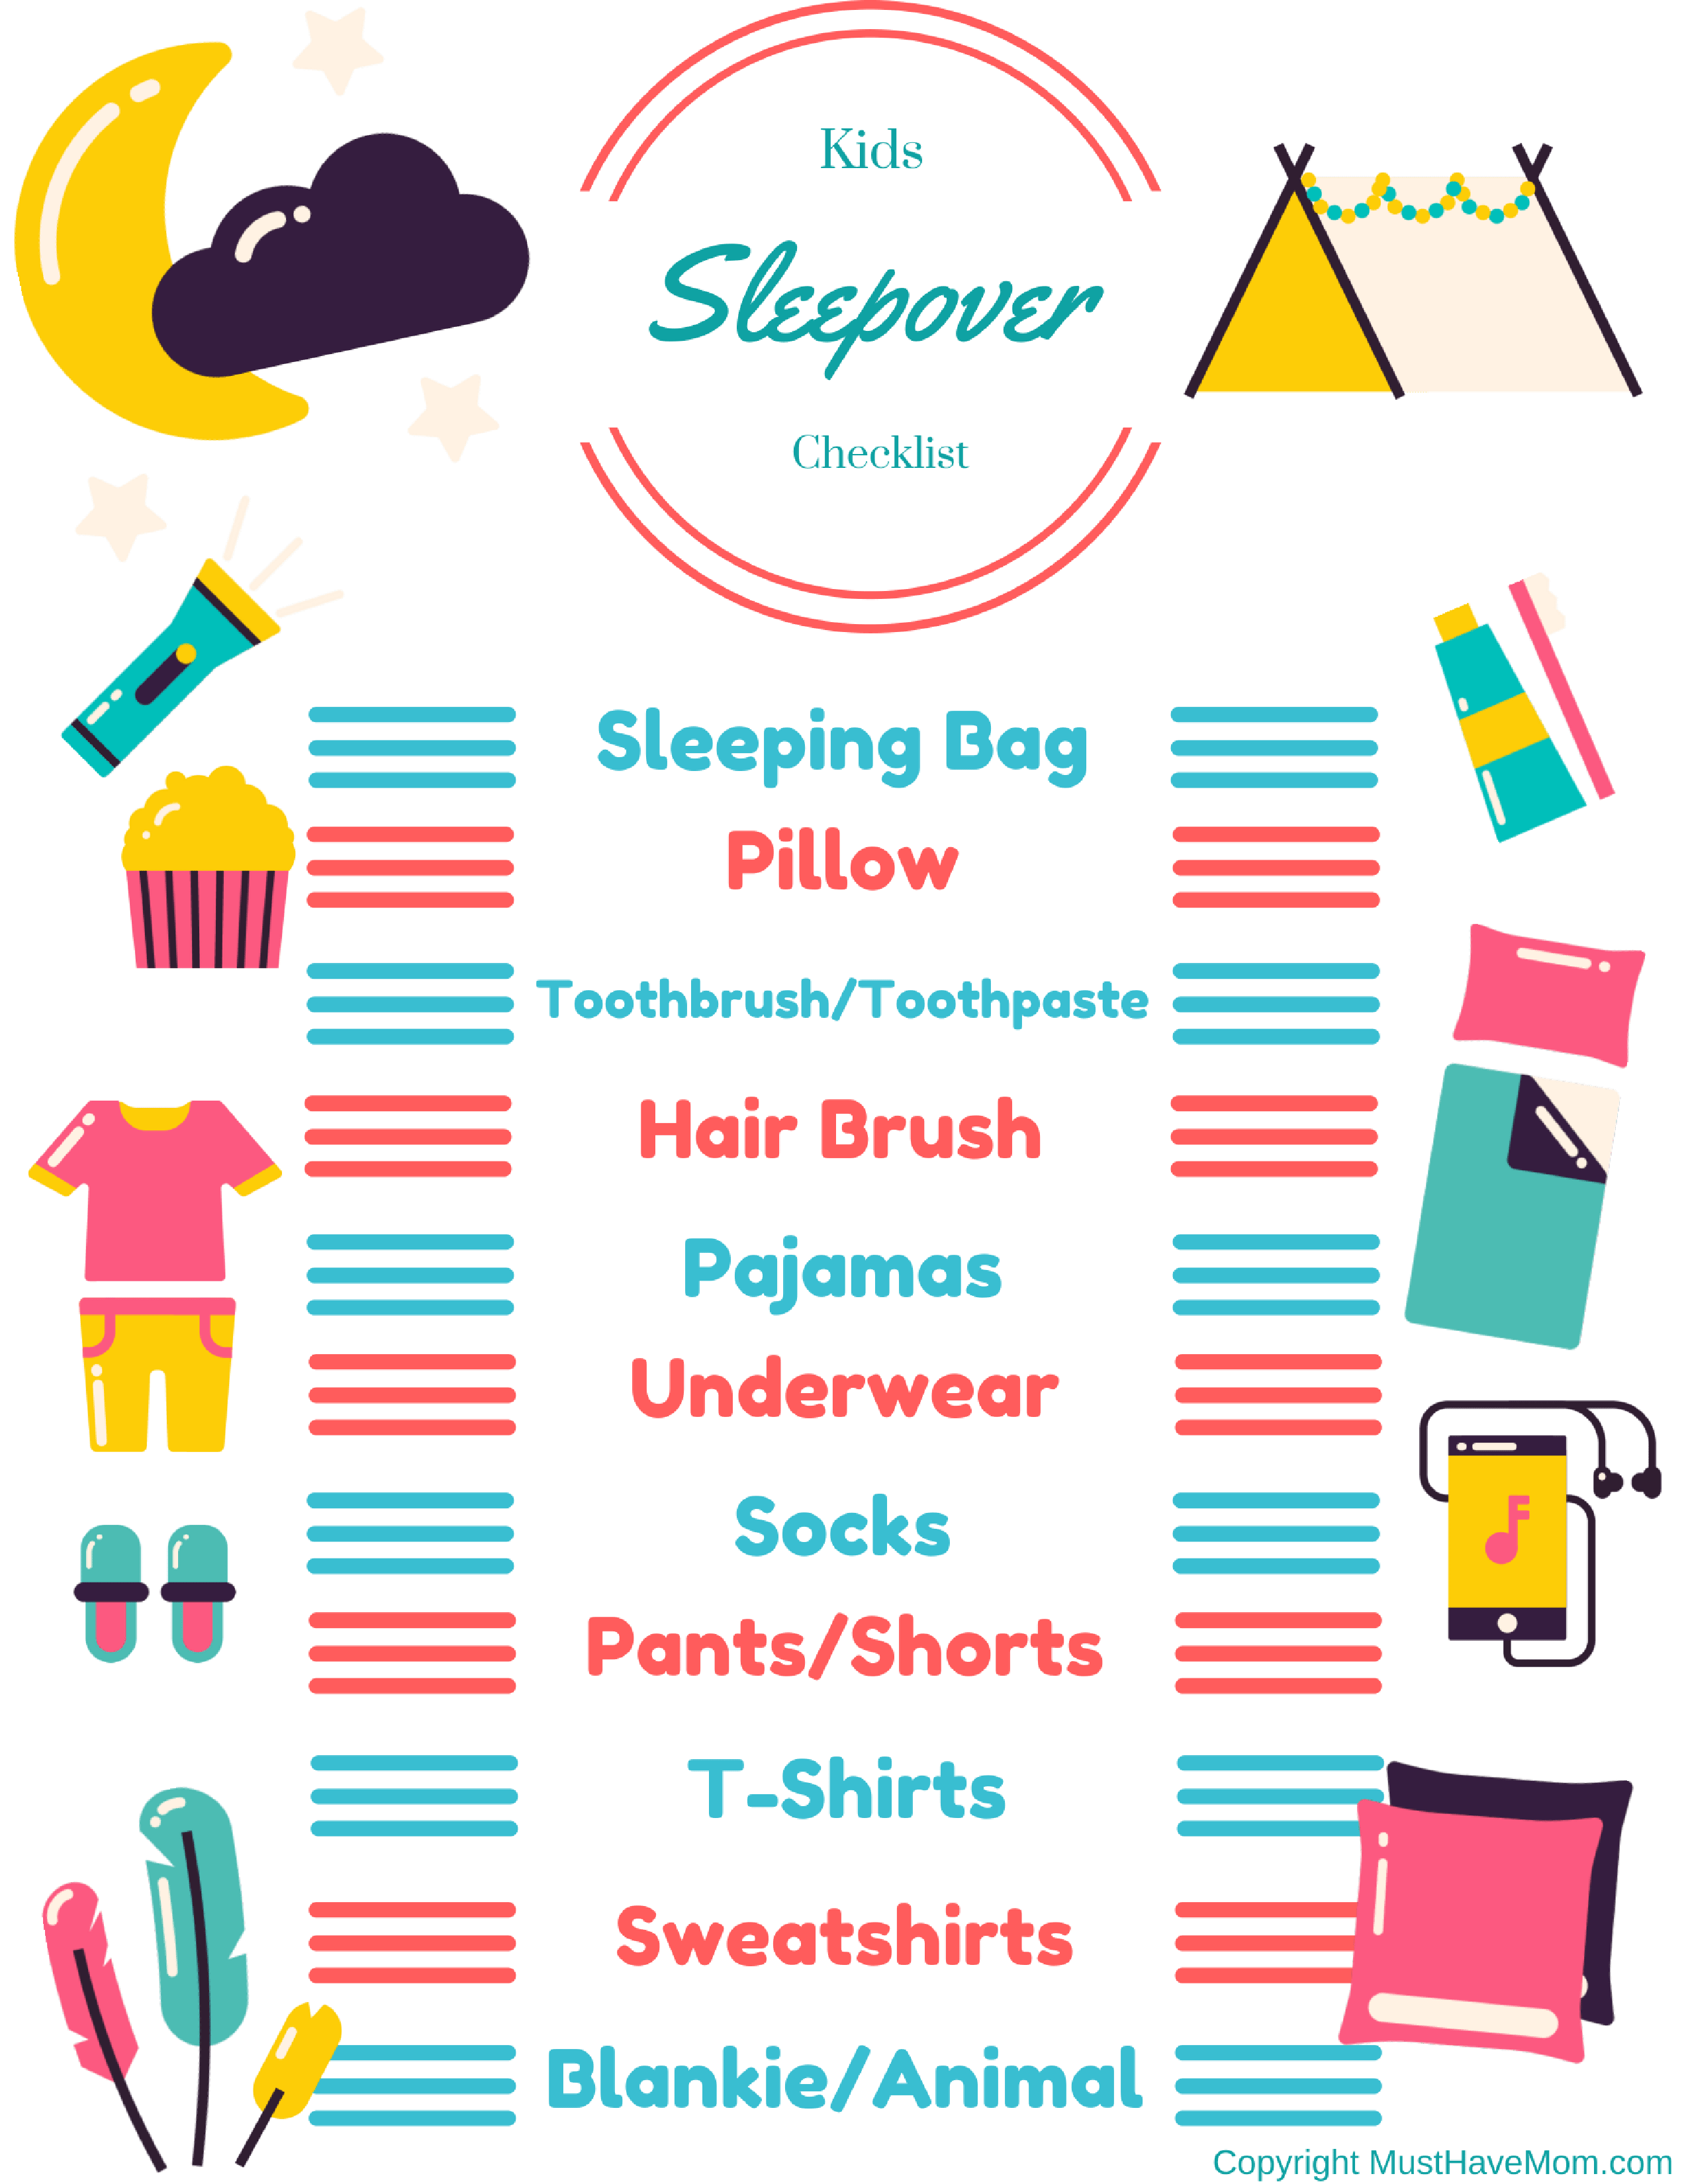 Kids Sleepover Checklist Free Printable